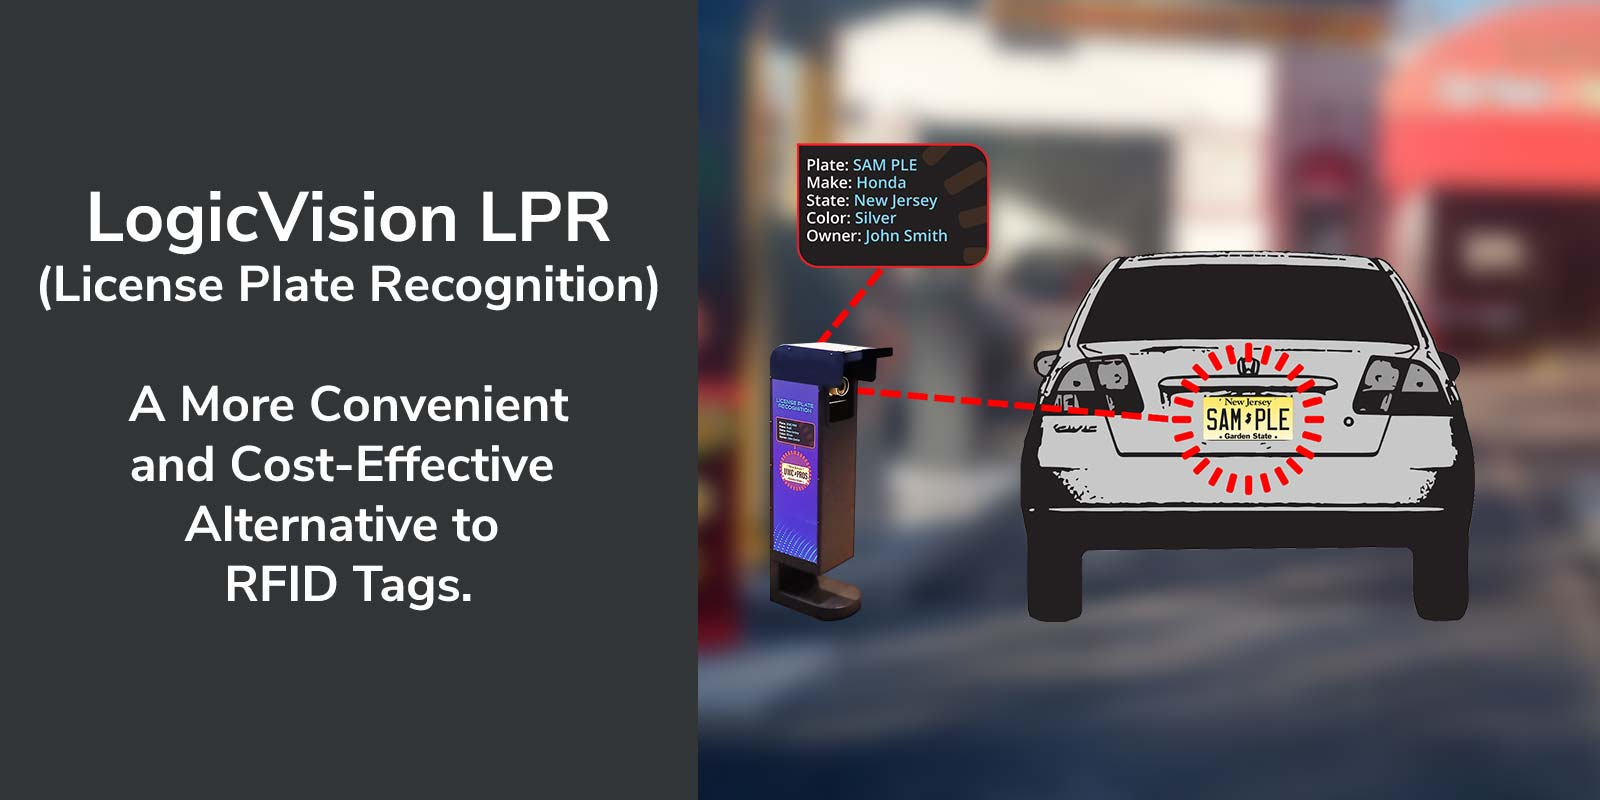 LogicVision LPR License Plate Recognition System